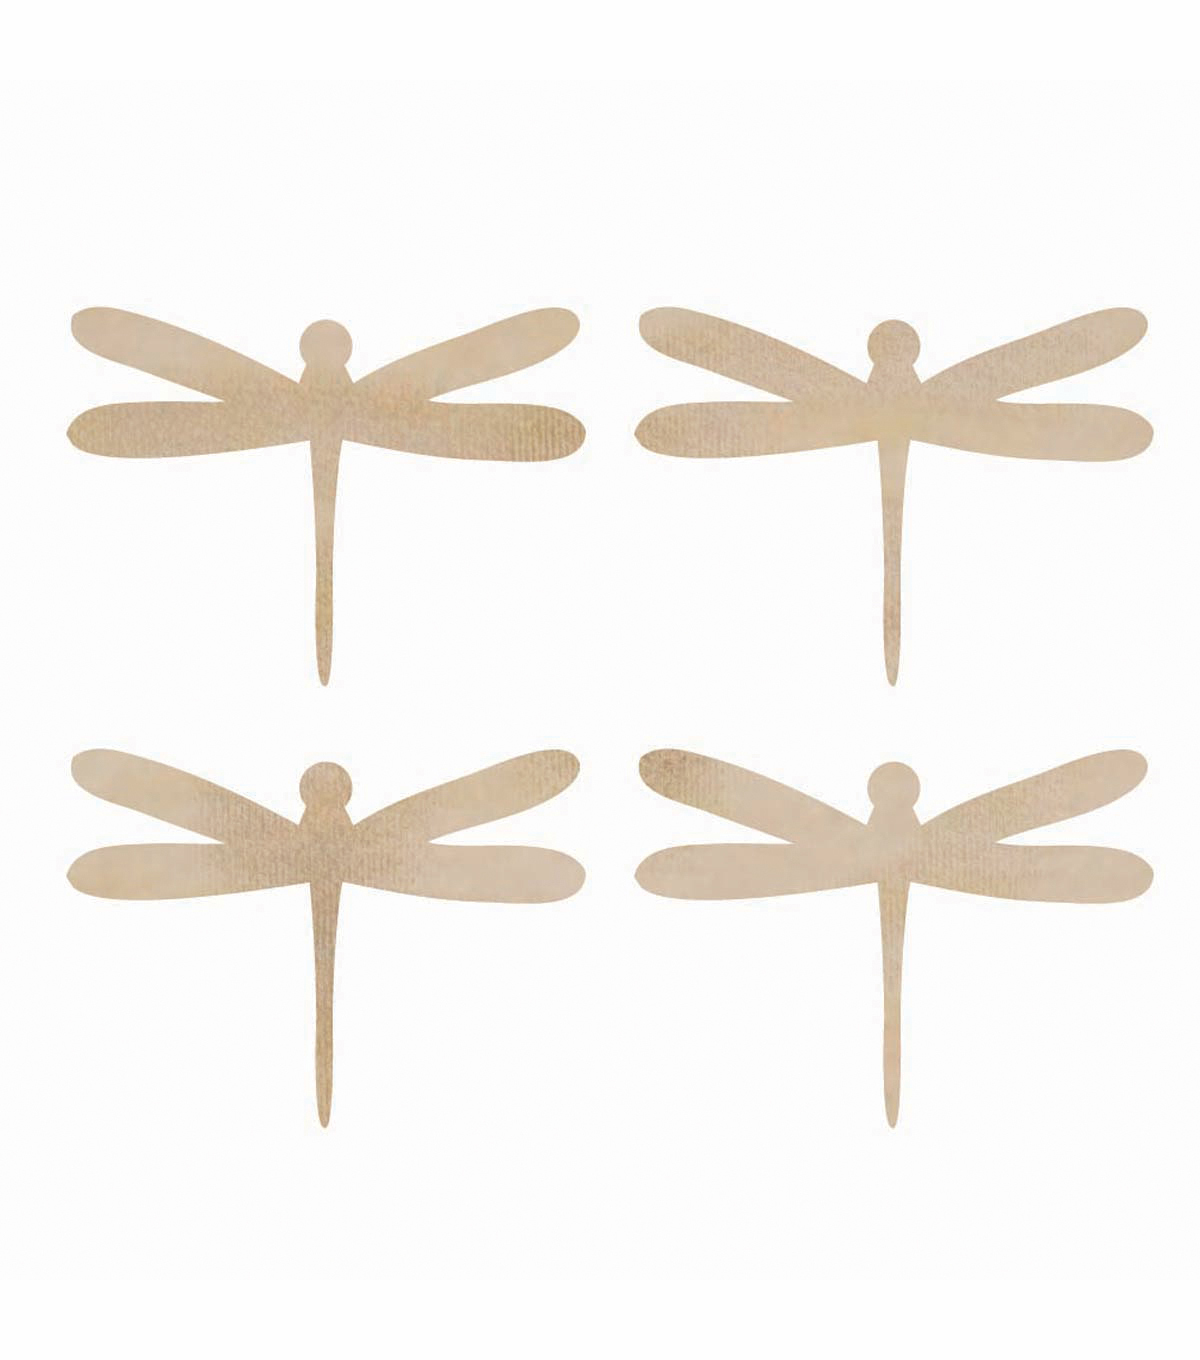 Kaisercraft Wood Flourishes Dragonflies